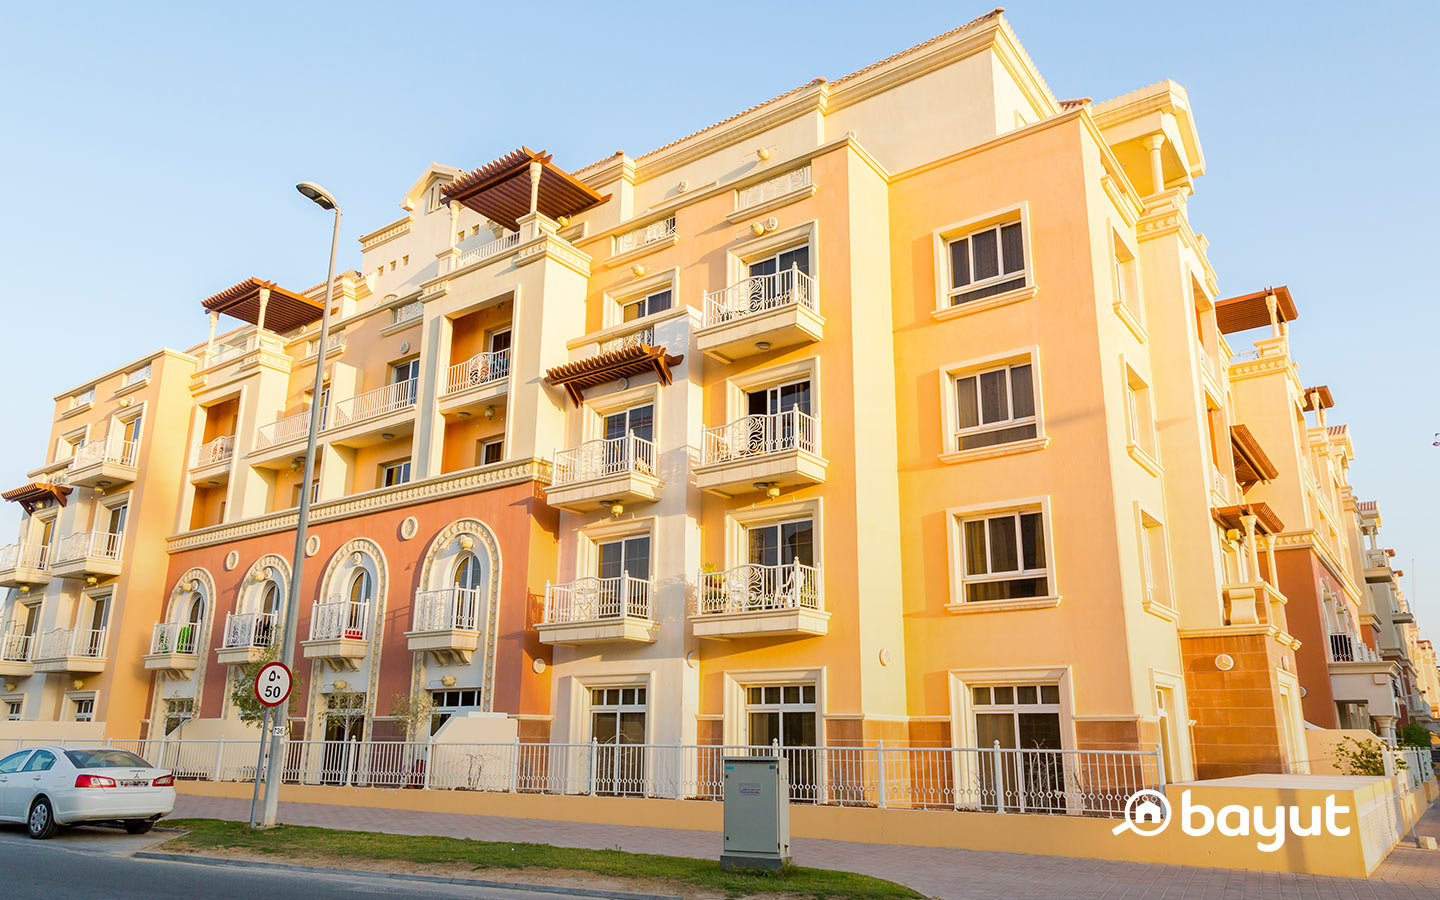 There are different types of villas, townhouses and apartments for rent in JVC